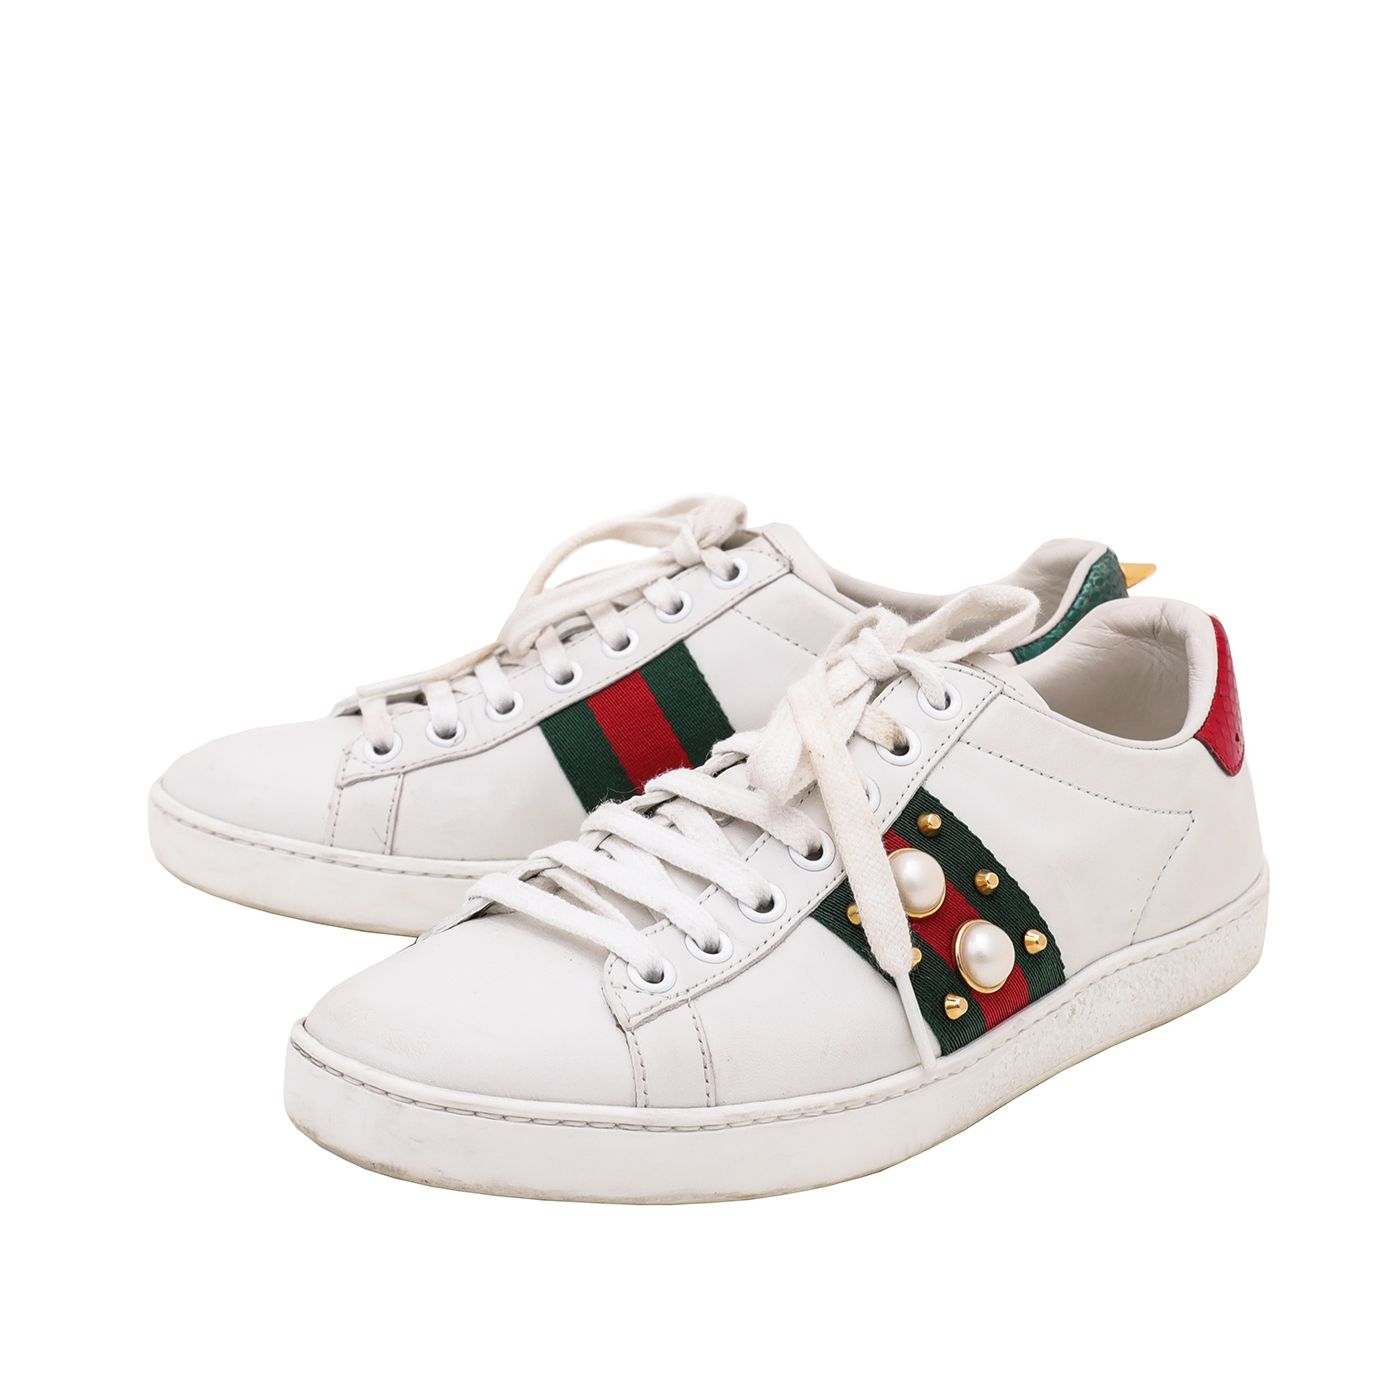 Gucci White Women's Ace Studded Pearl and Spike Sneakers 36